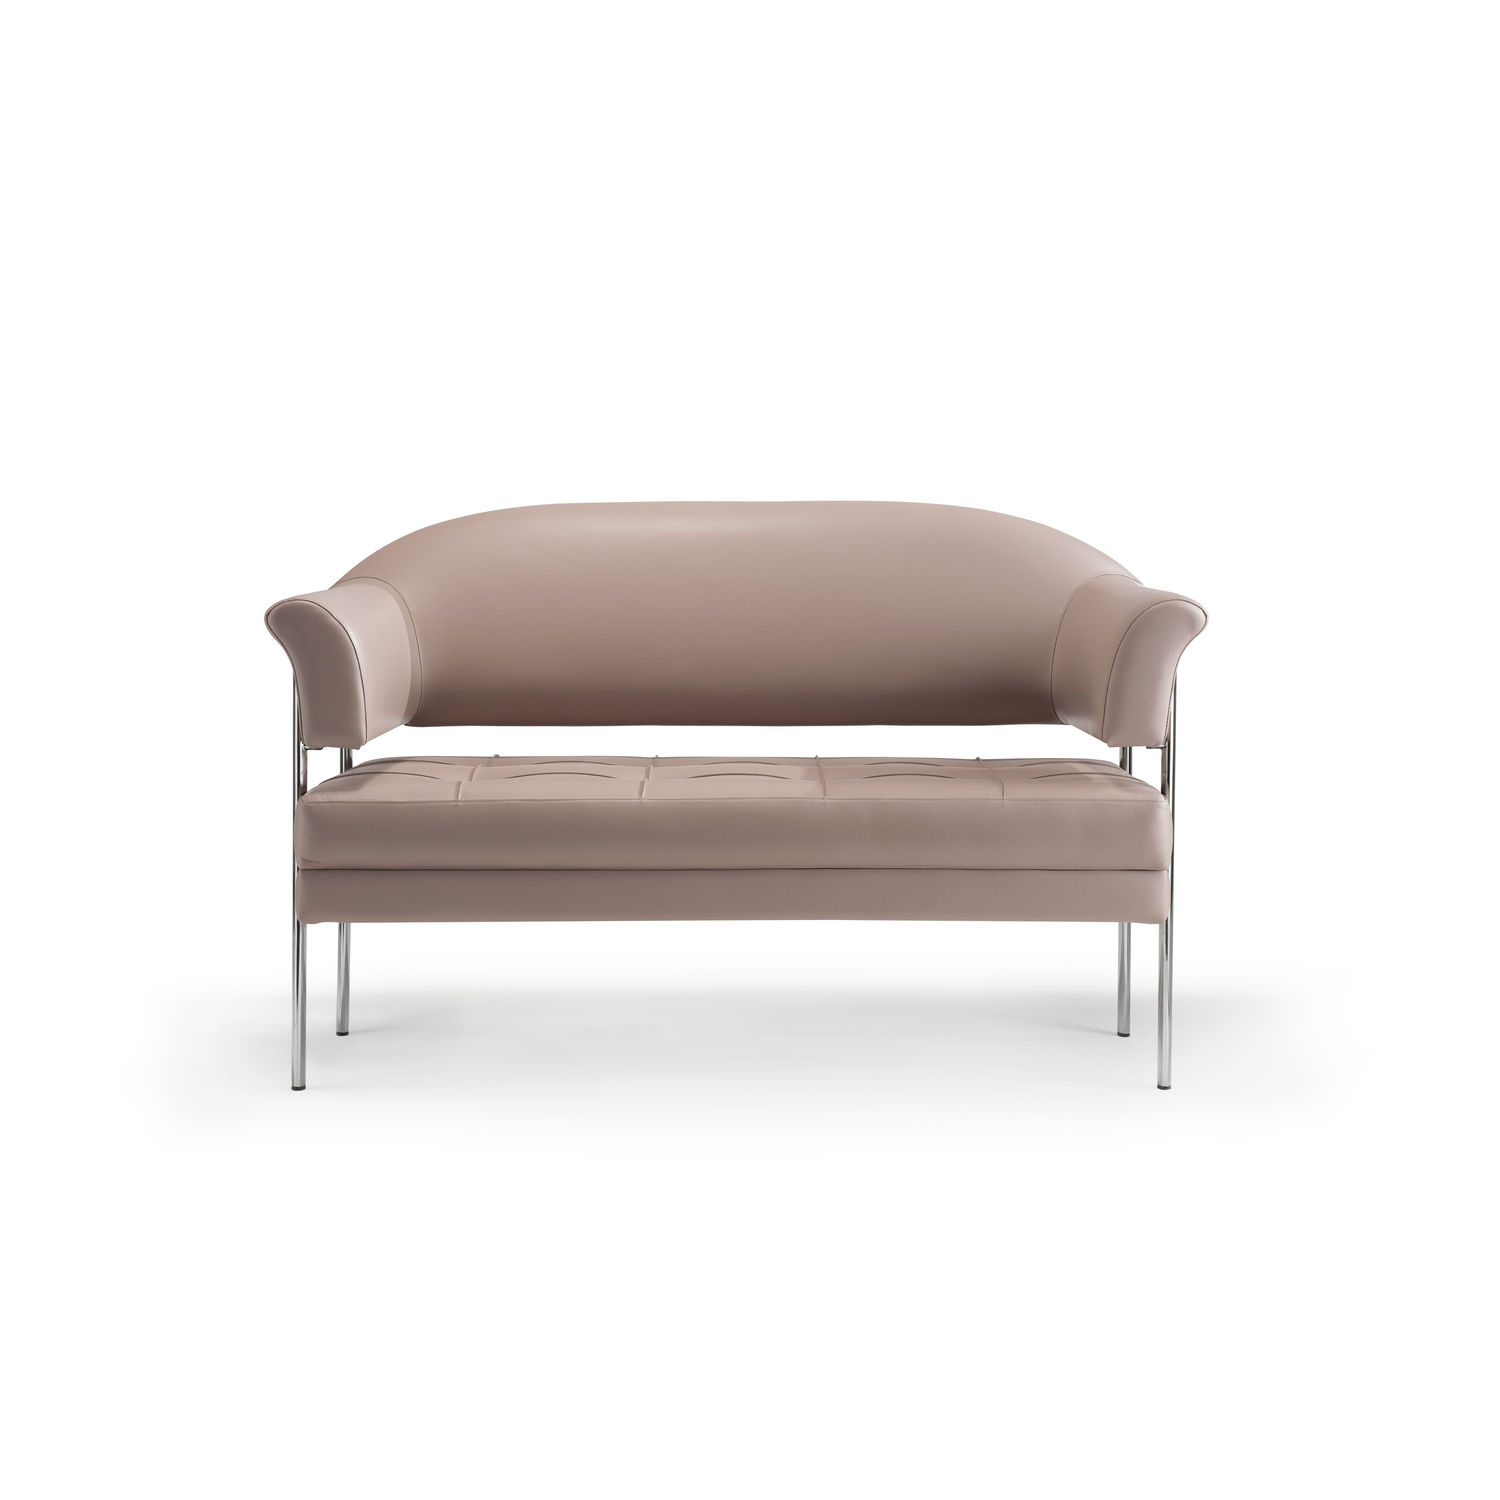 Chesterfield sofa / leather / commercial - DAISY